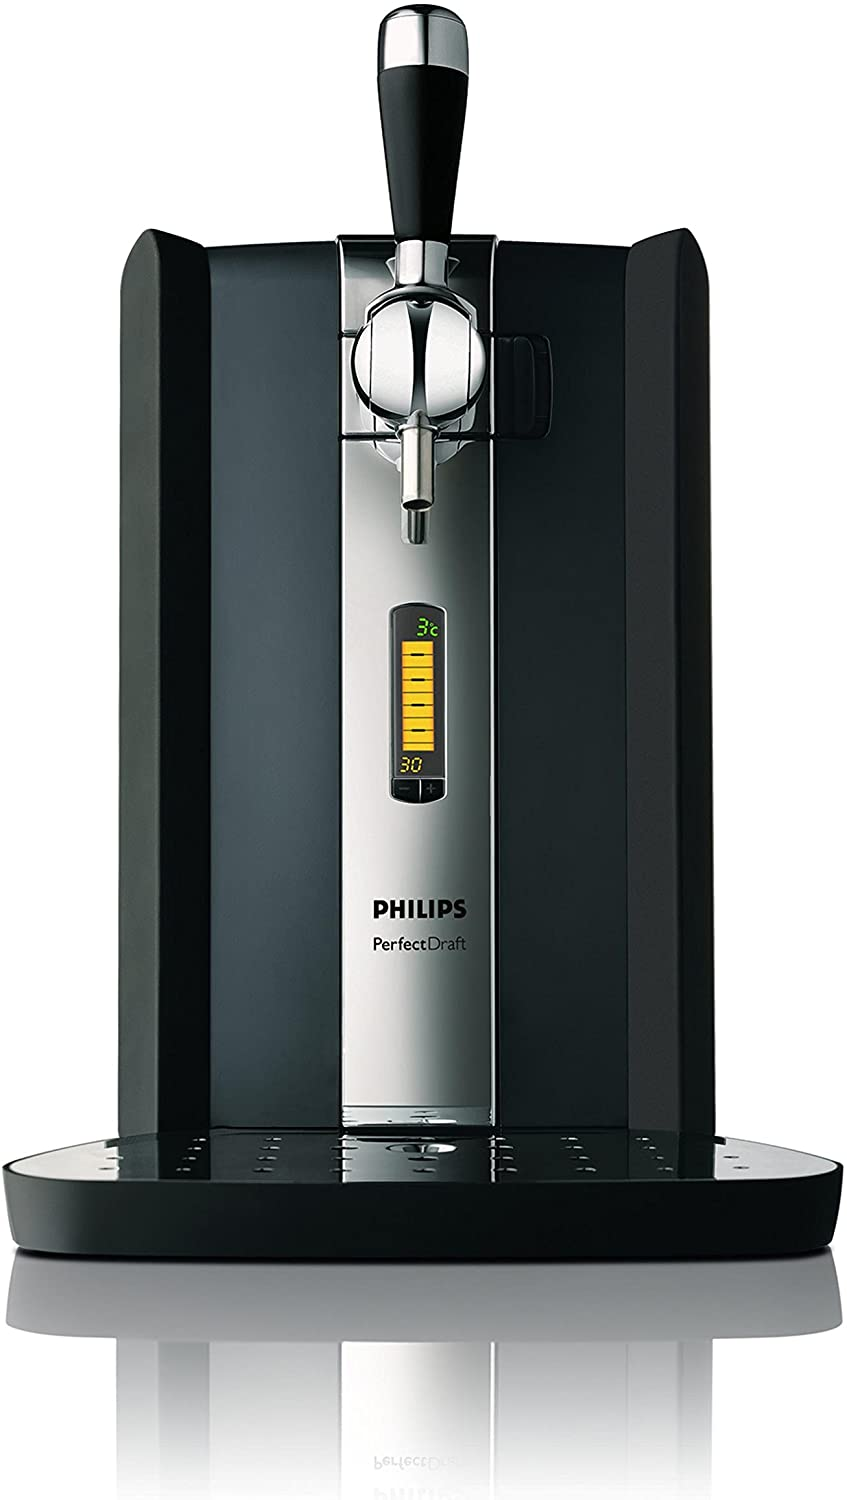 Philips HD 3620/25 Perfect Draft beer image 1